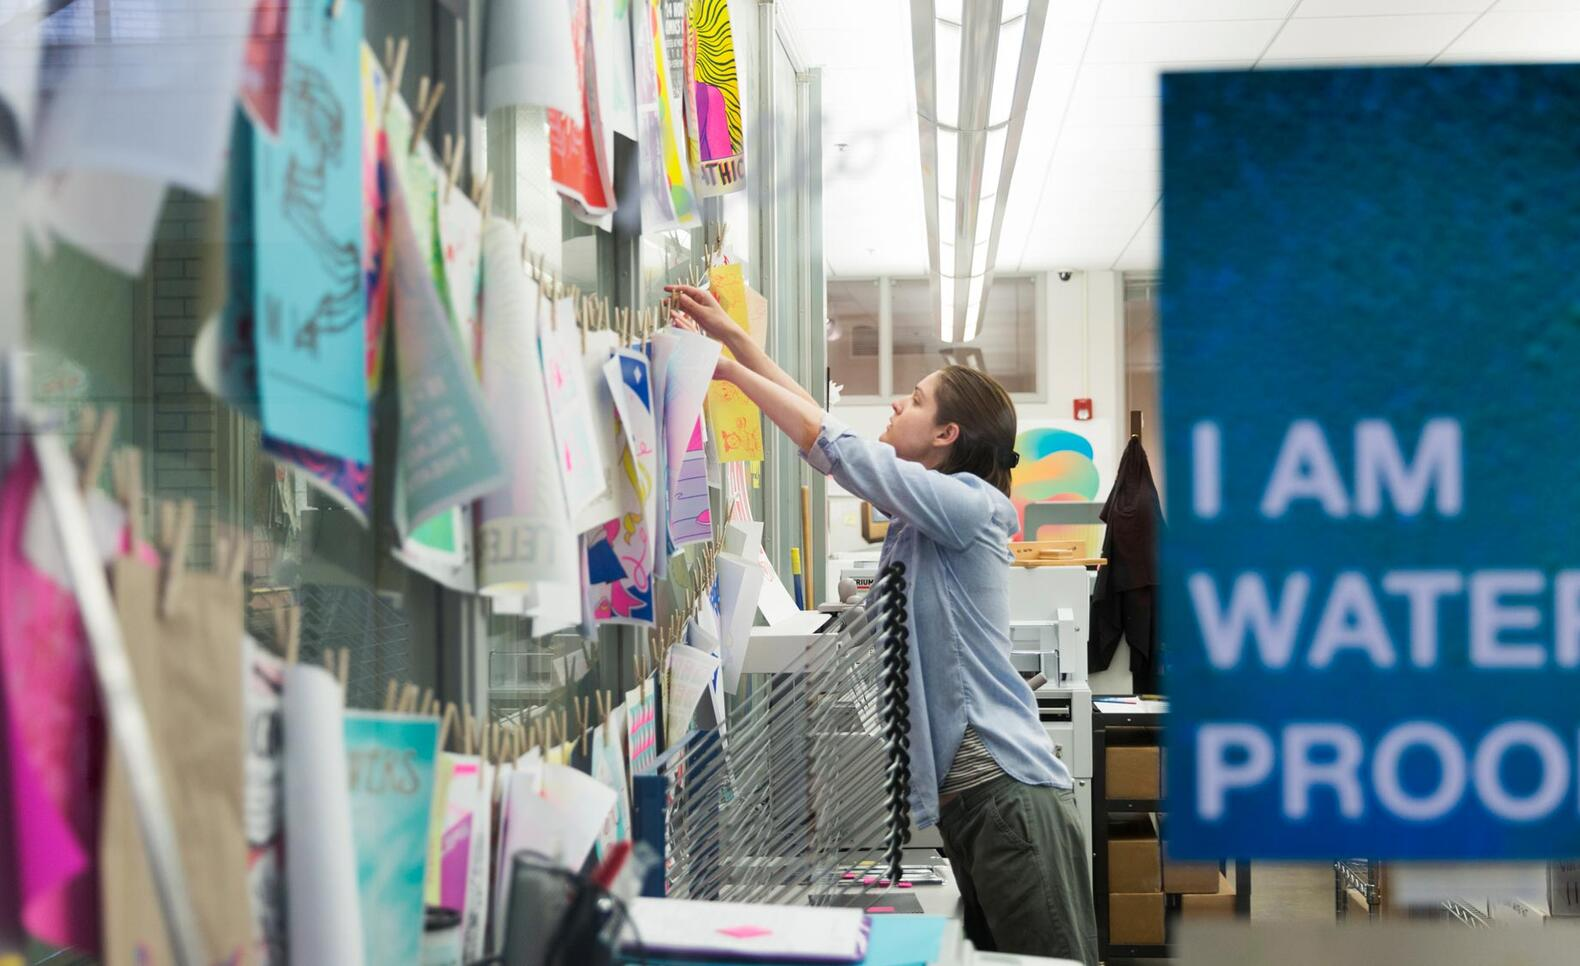 Person hanging up artwork in the Service Bureau